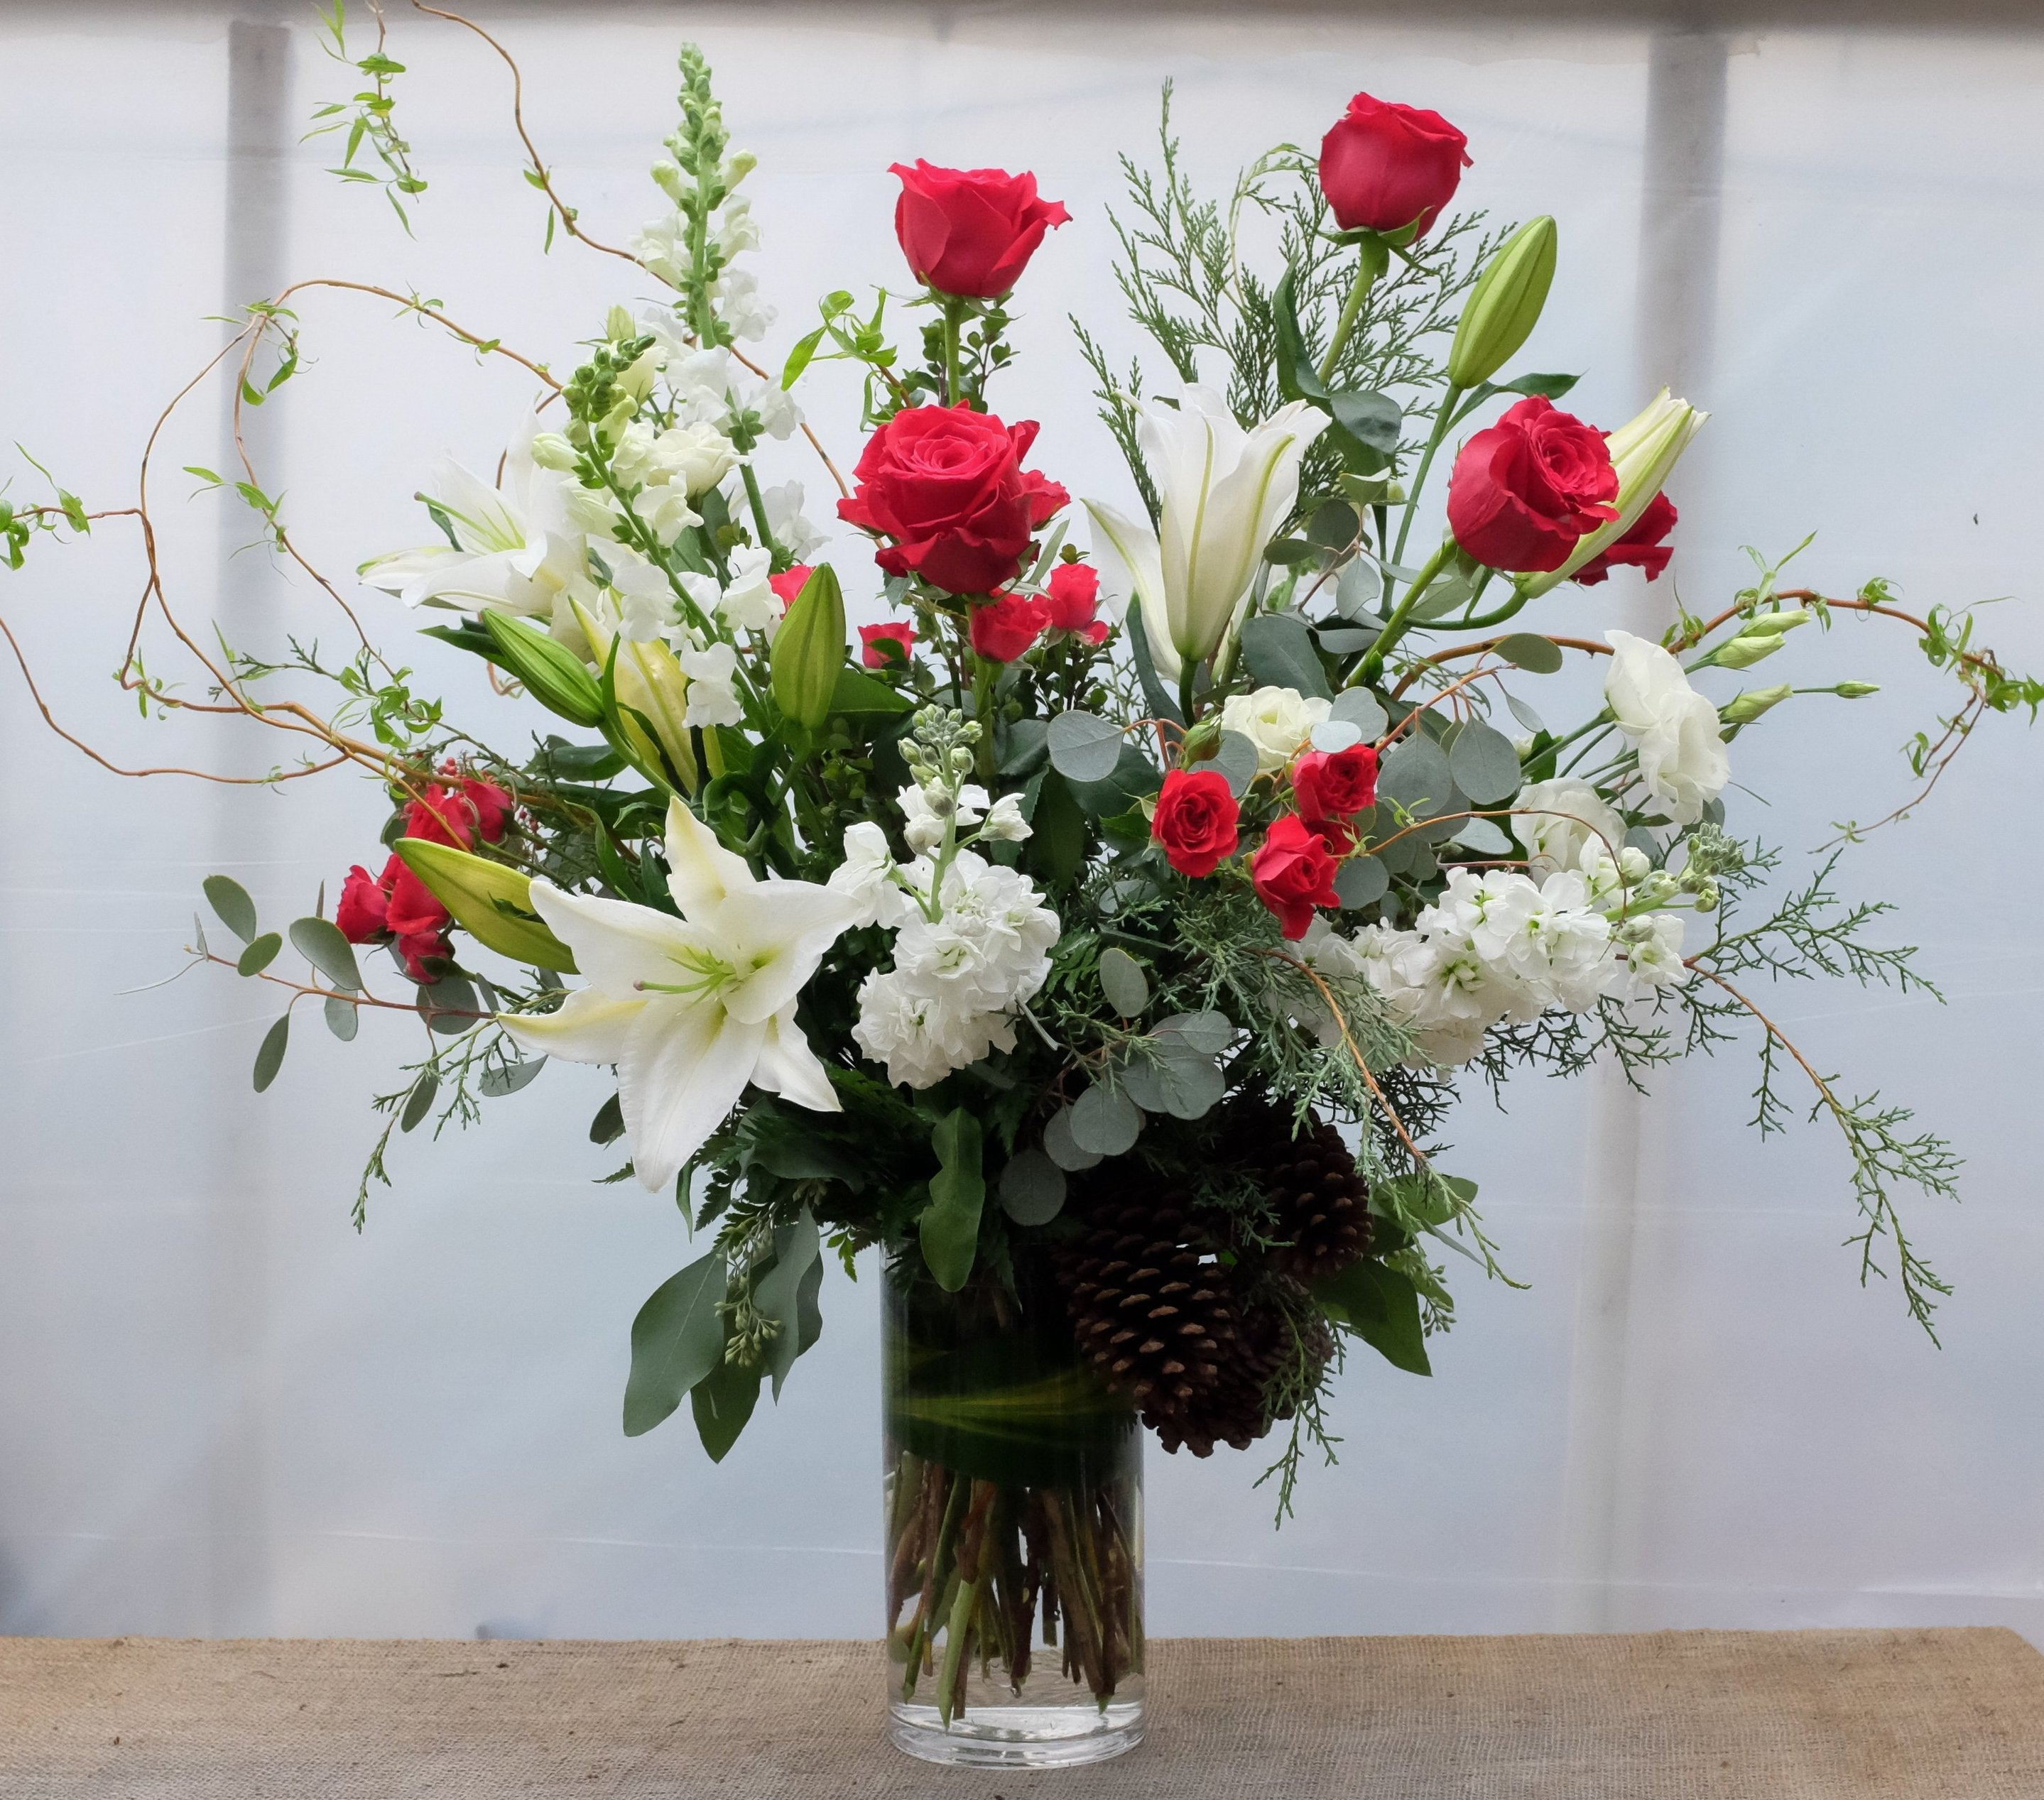 Niagra design flowers in lexington ky michlers florist large vase arrangement with red roses lilies branches and matthiola designed by reviewsmspy